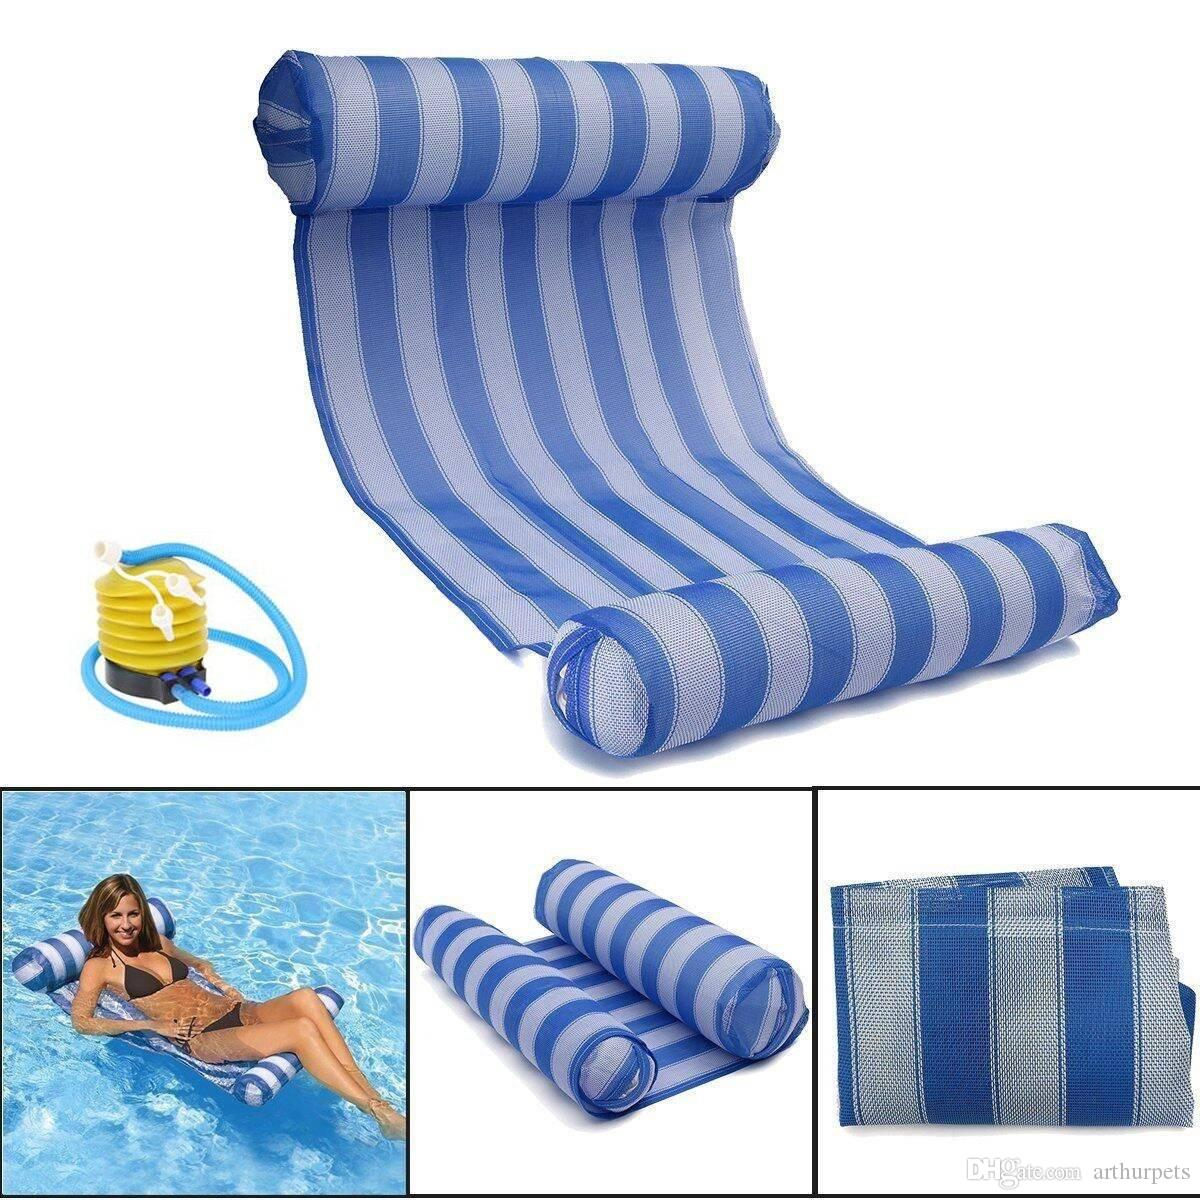 inflatable fopfei sleeping accessories chair from stripe lounger mattress air pool float swimming product floats water bed hammock